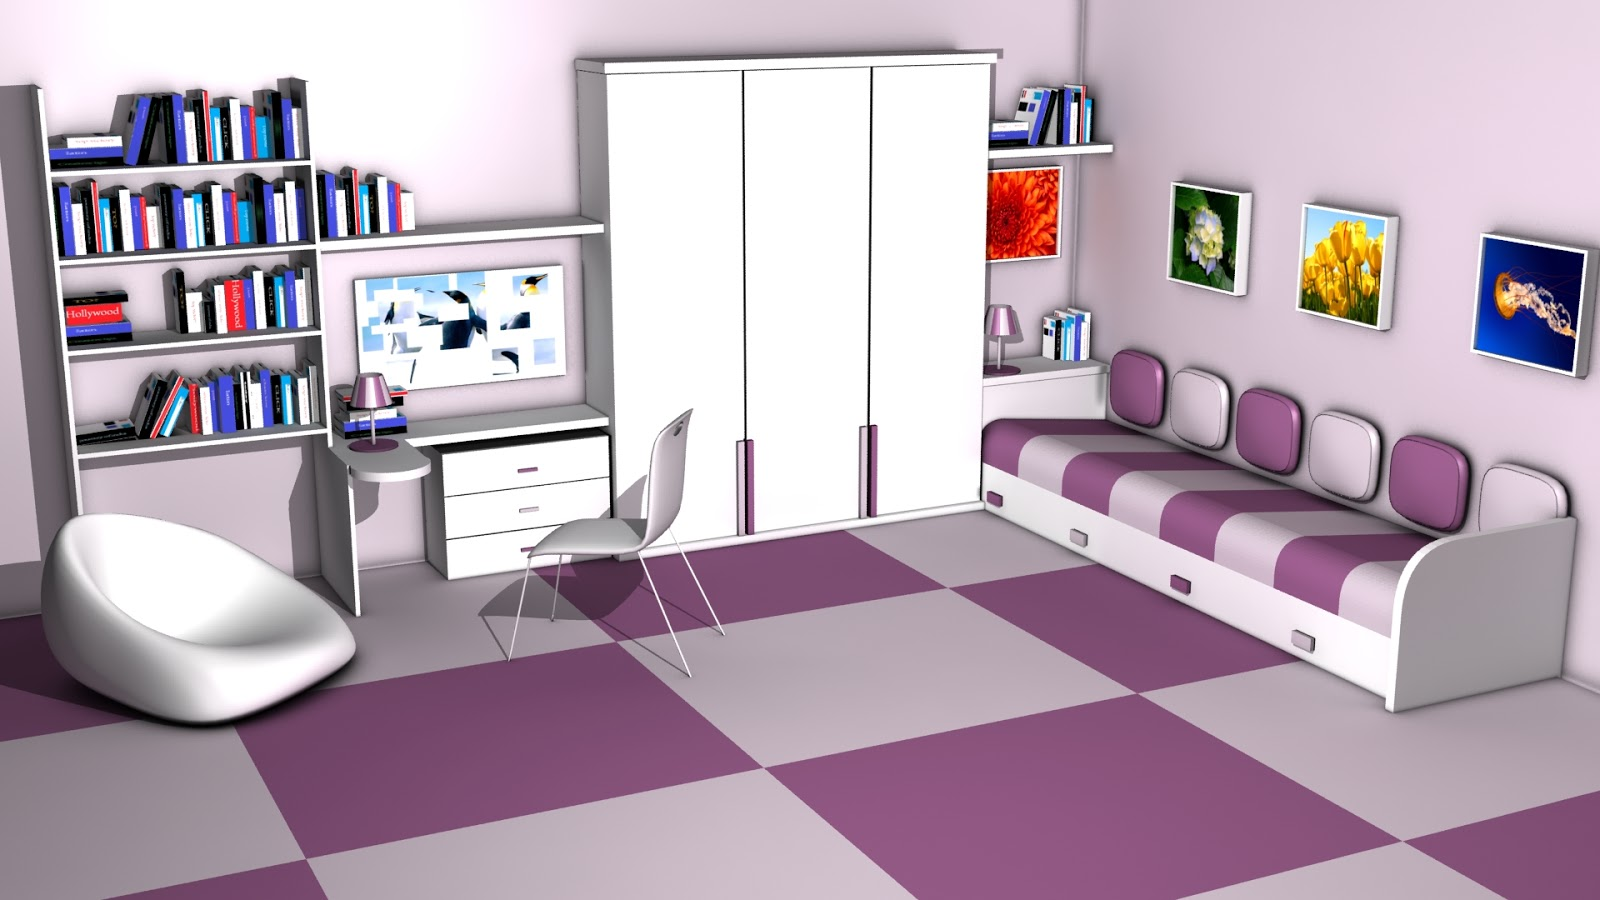 Sajid designs room interior design 3ds max for Decoration 3ds max